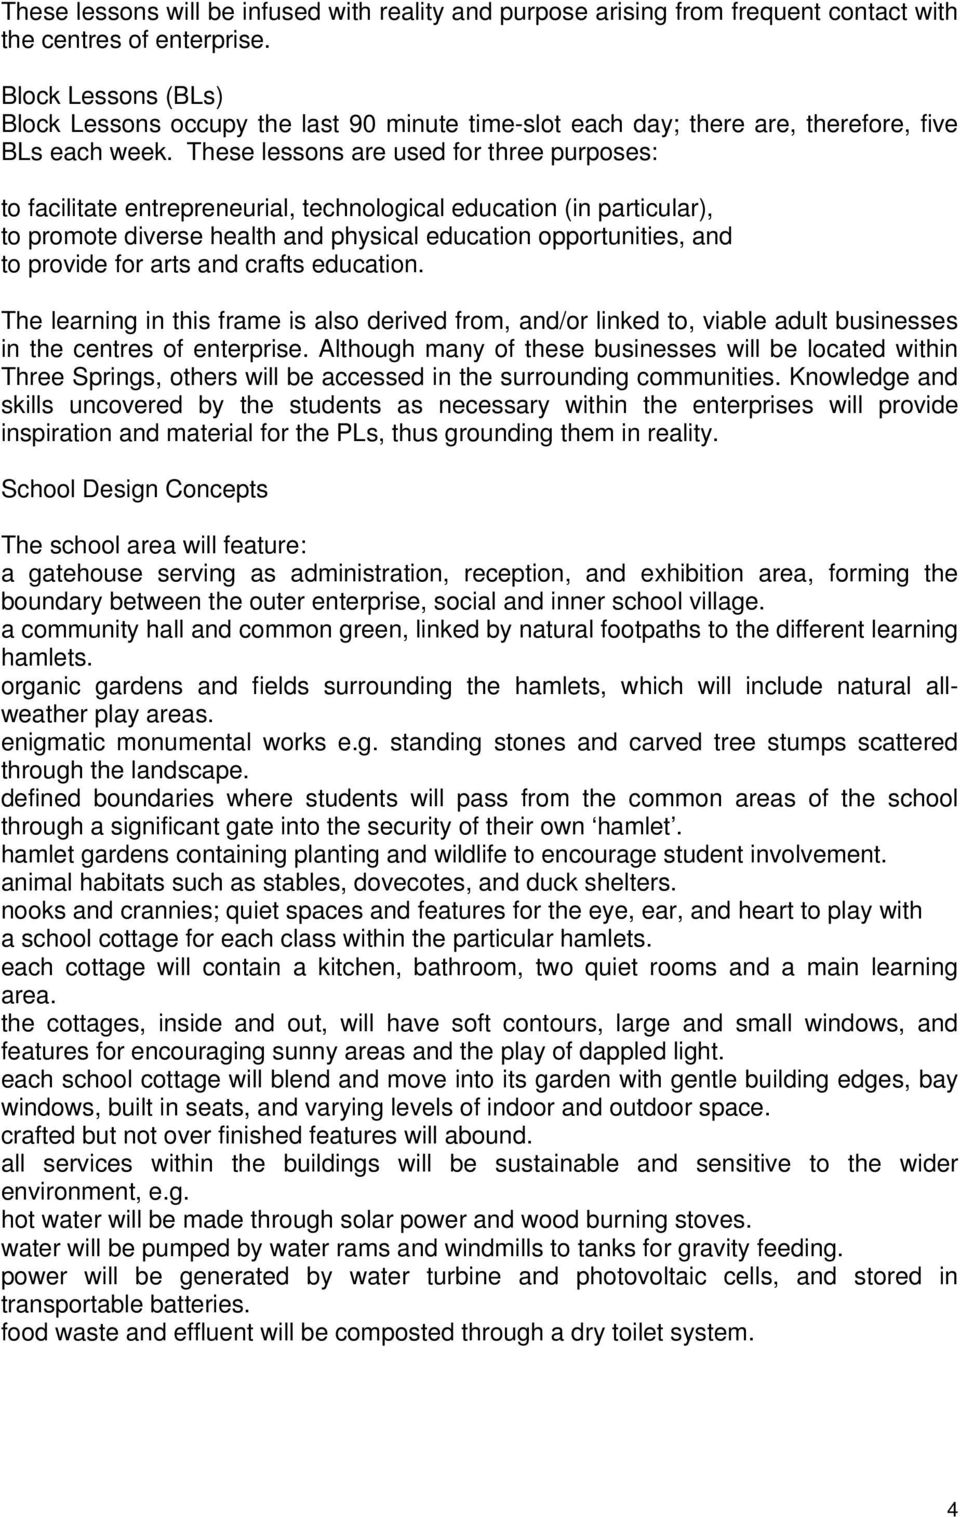 These lessons are used for three purposes: to facilitate entrepreneurial, technological education (in particular), to promote diverse health and physical education opportunities, and to provide for